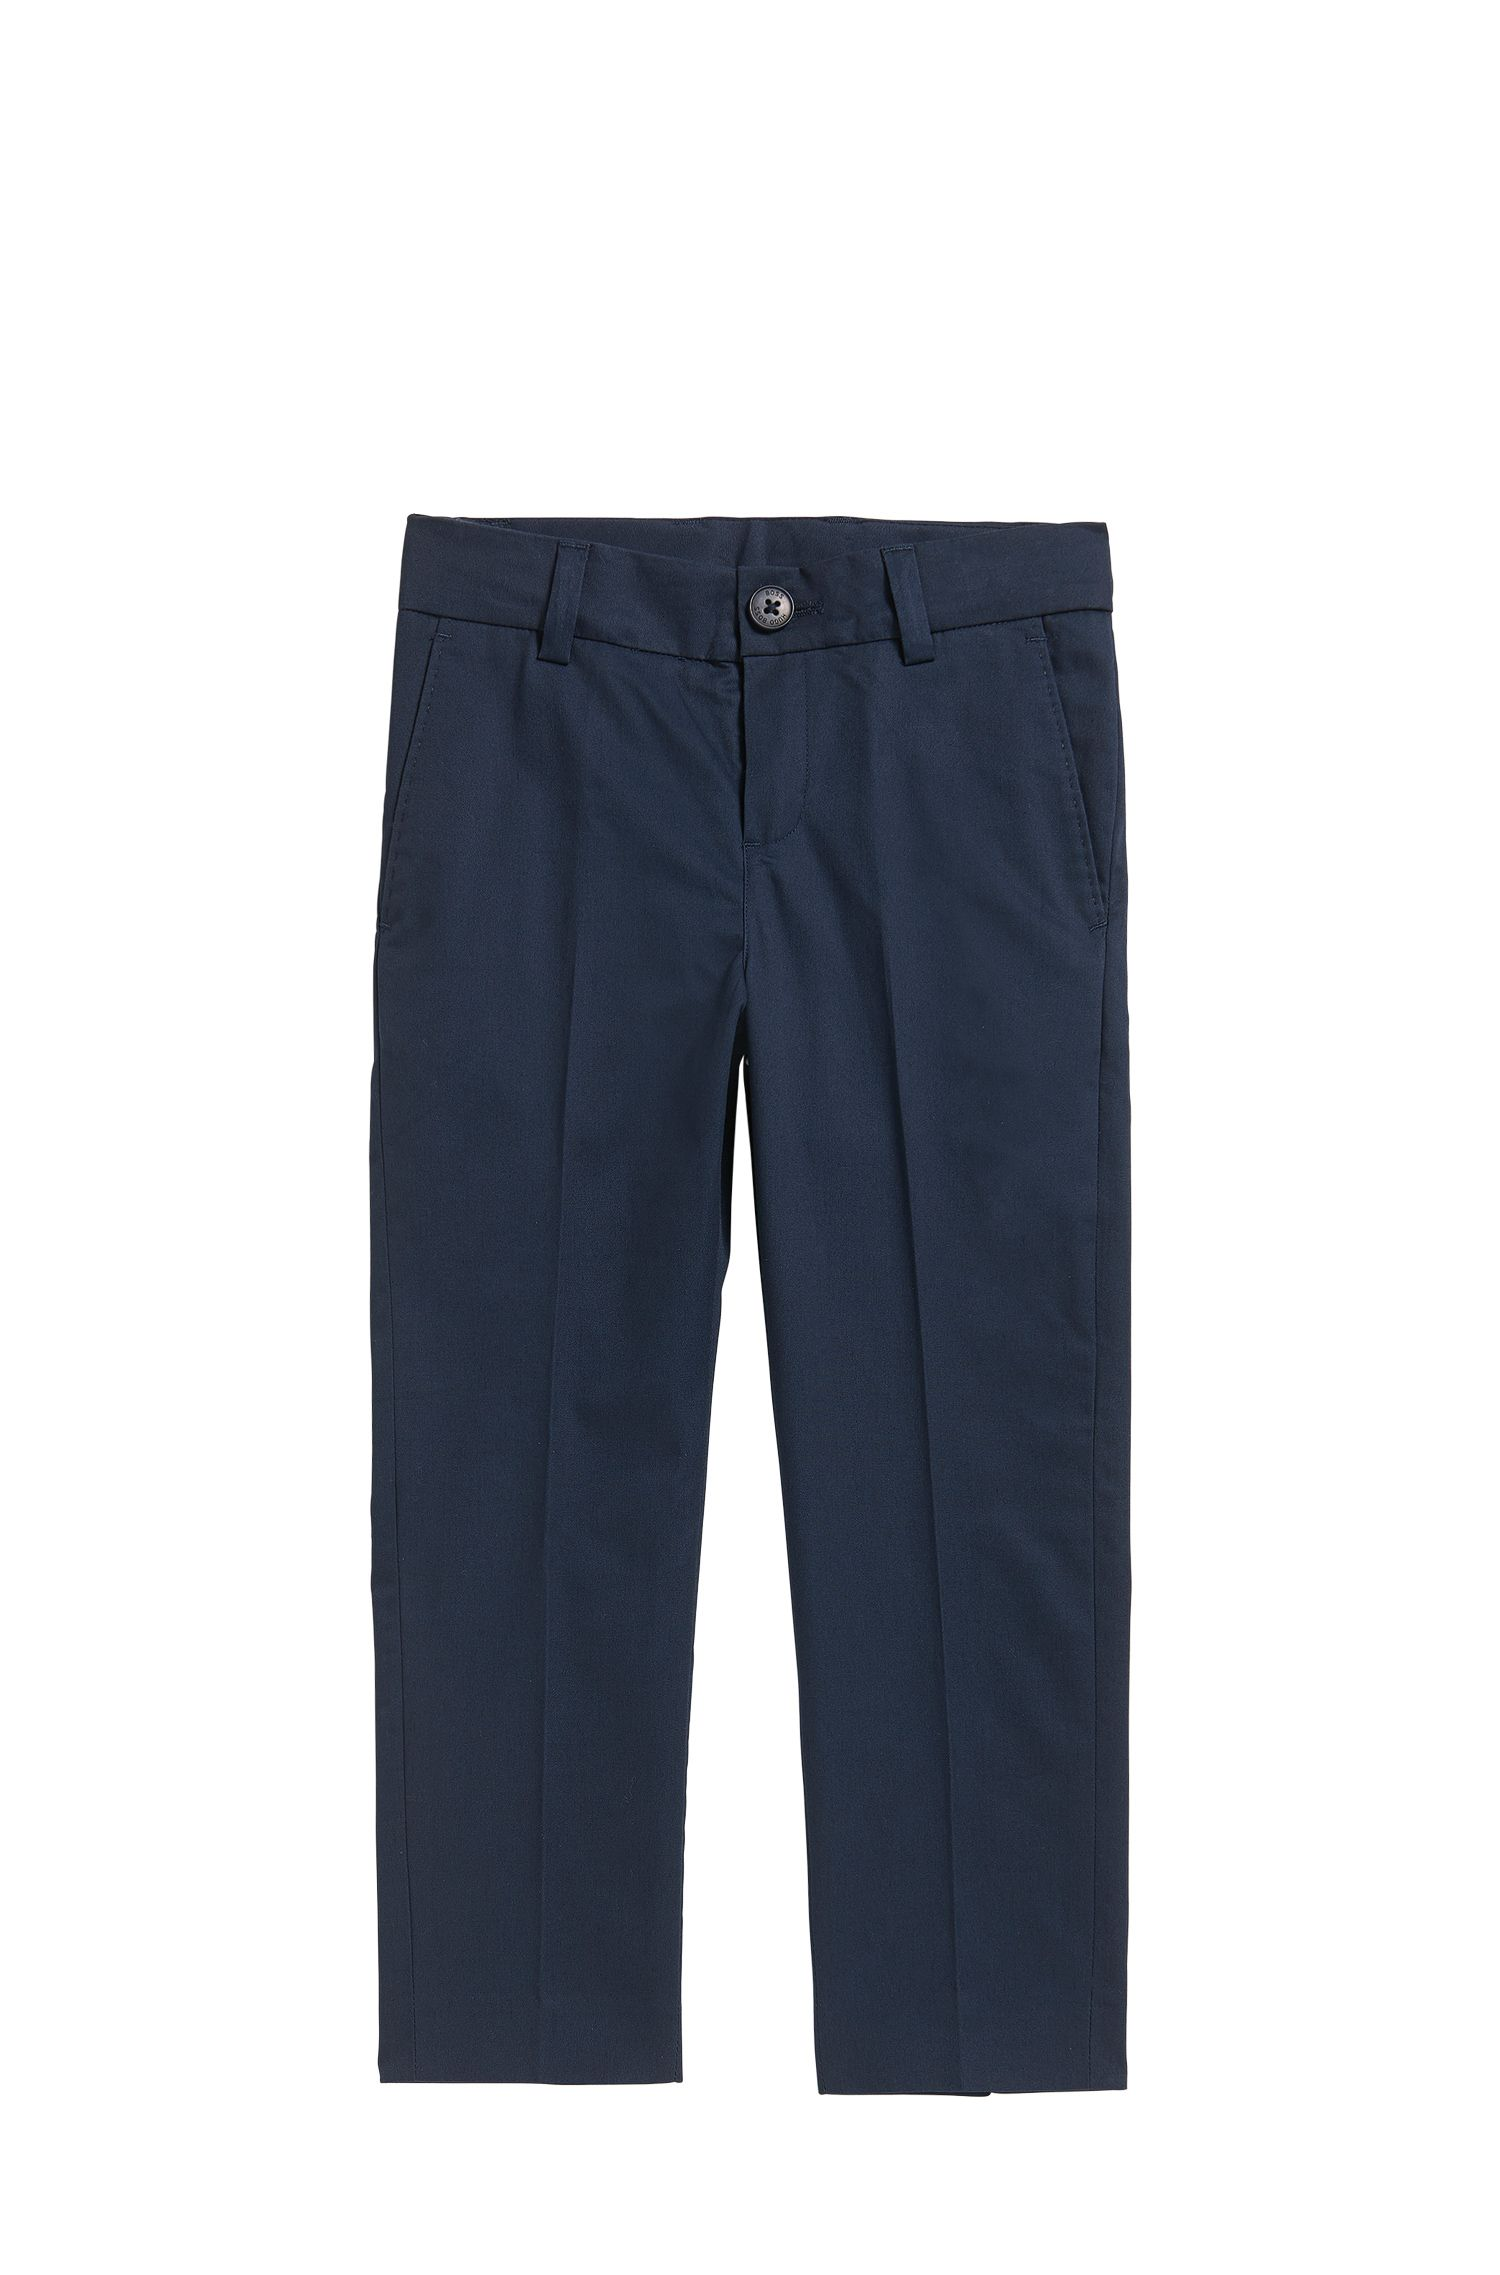 Kids' regular-fit suit trousers in cotton twill